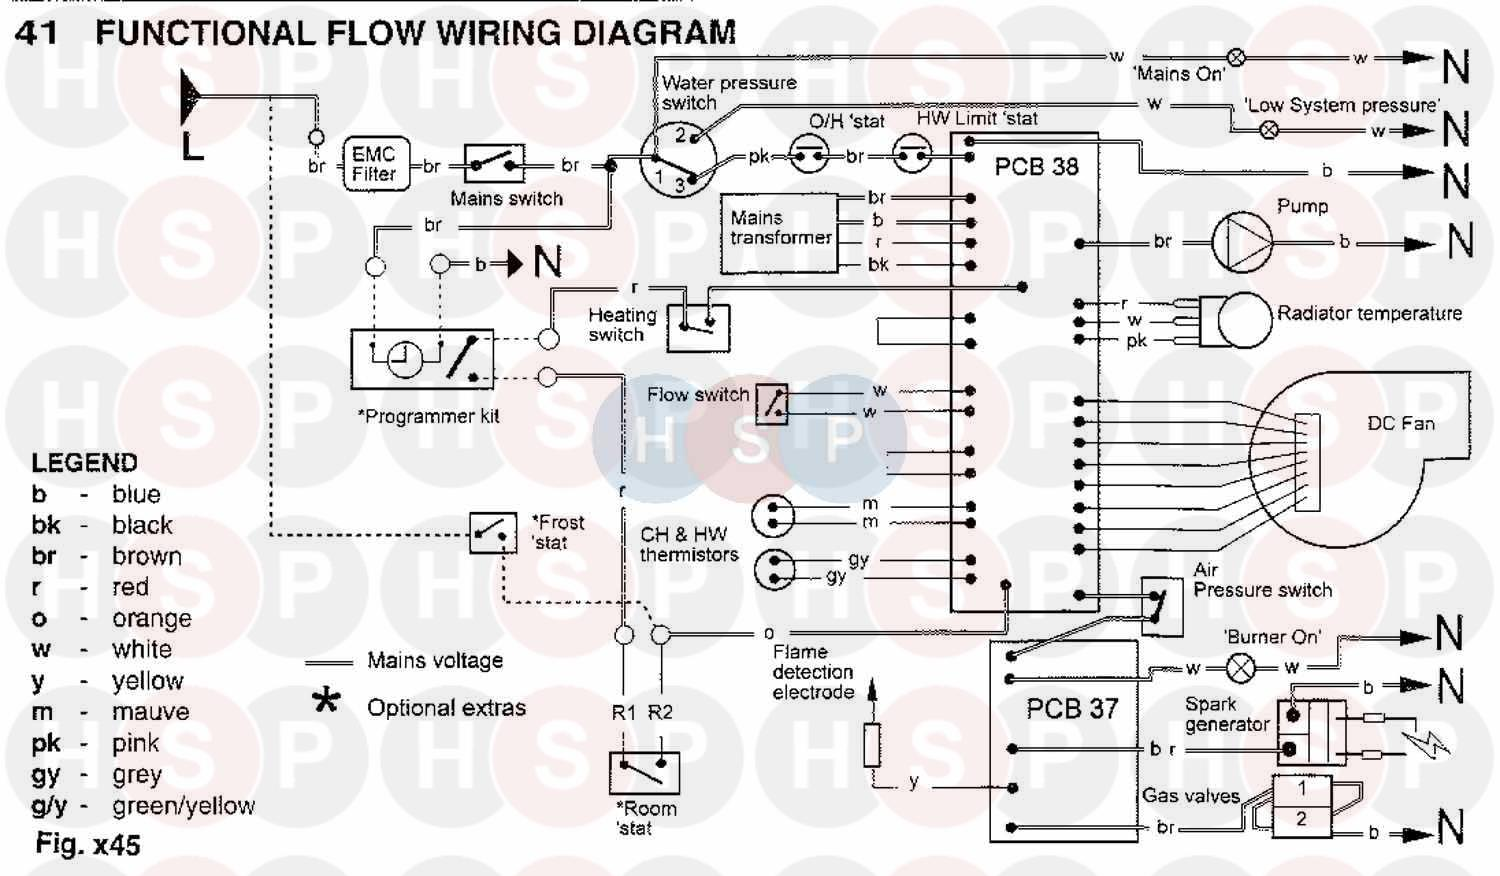 Ideal Response Ff80 Wiring Diagram 2 Heating Spare Parts Air Pressor Click The To Open It On A New Page